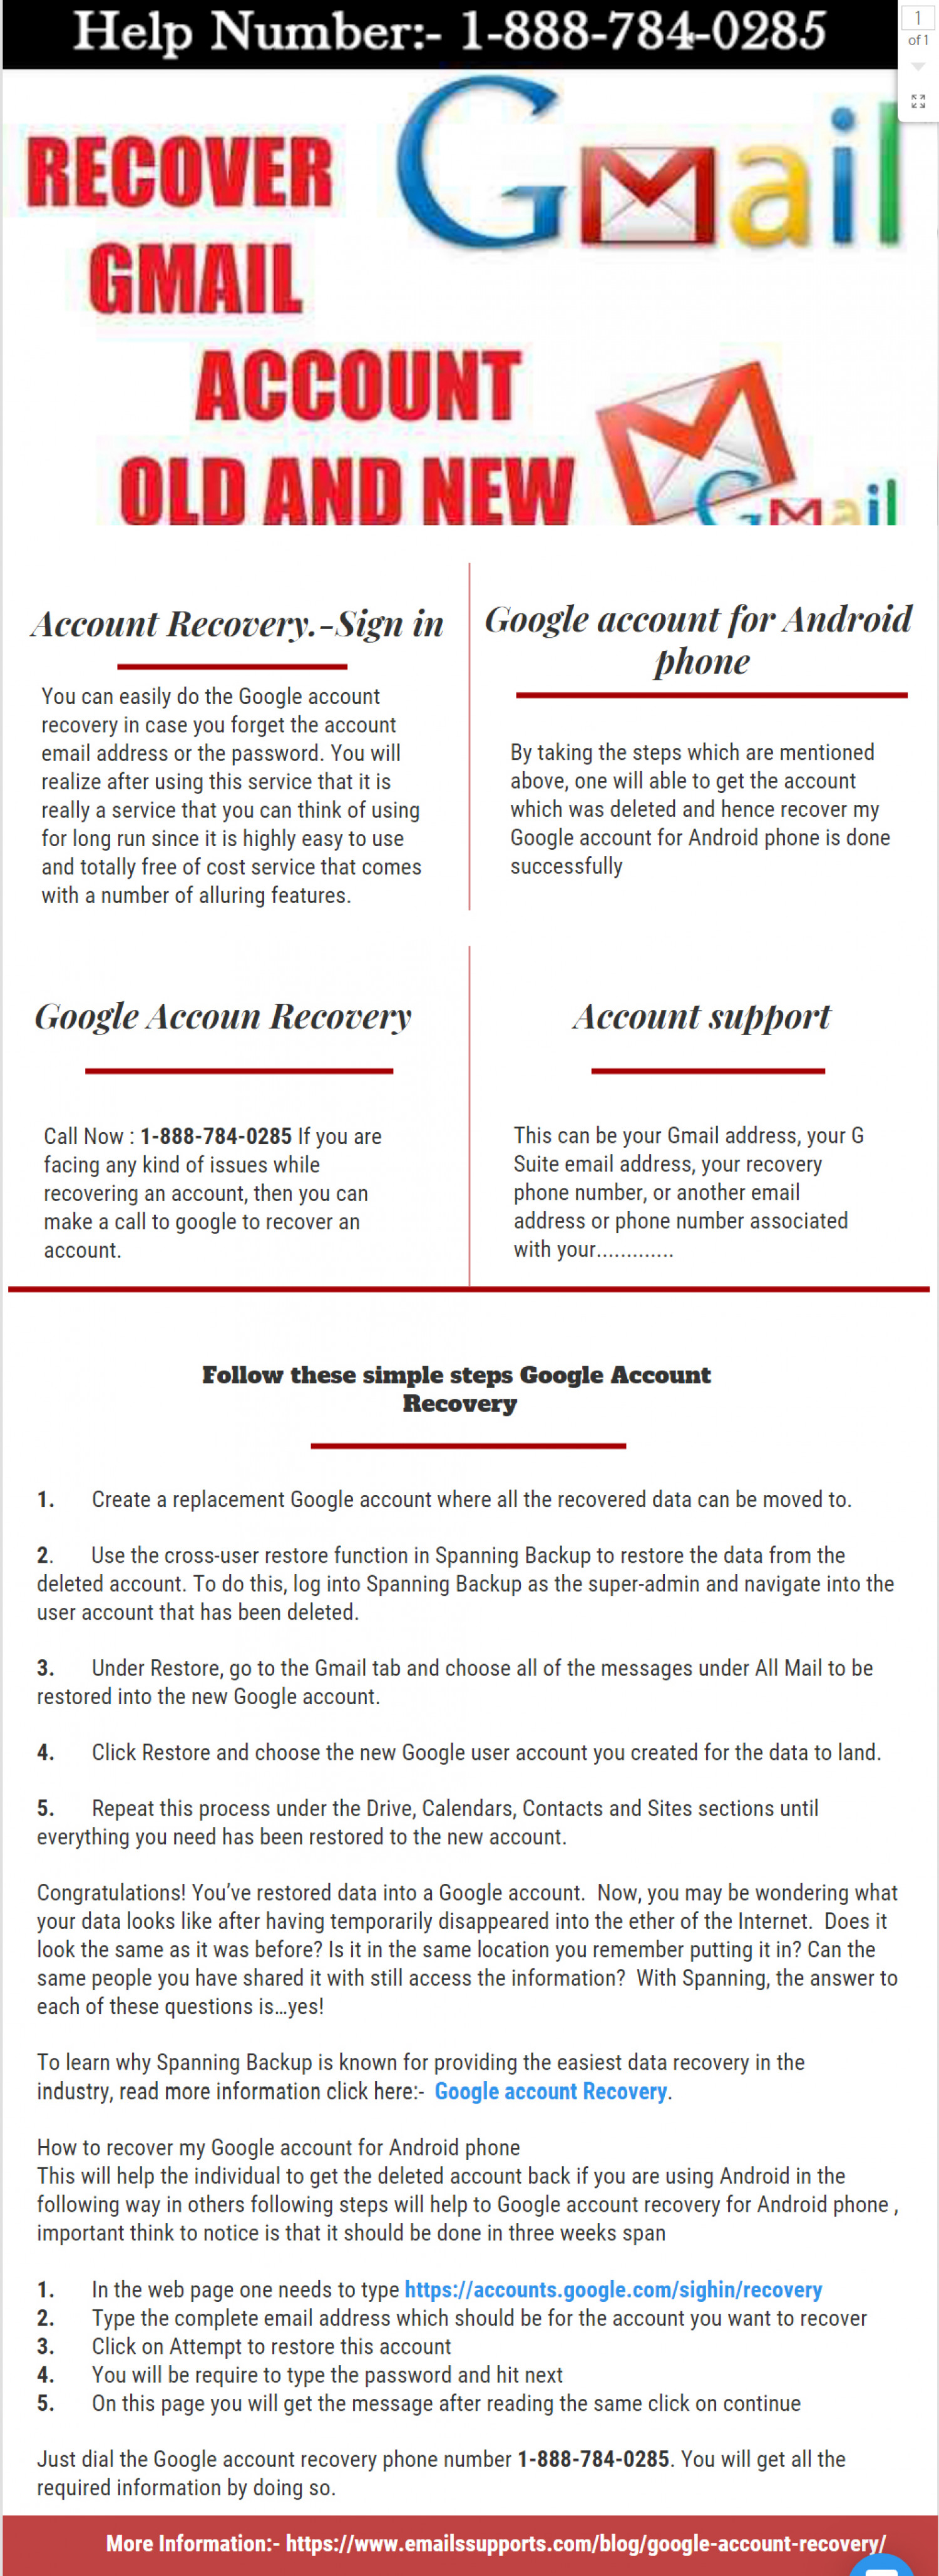 Google Account Recovery Infographic